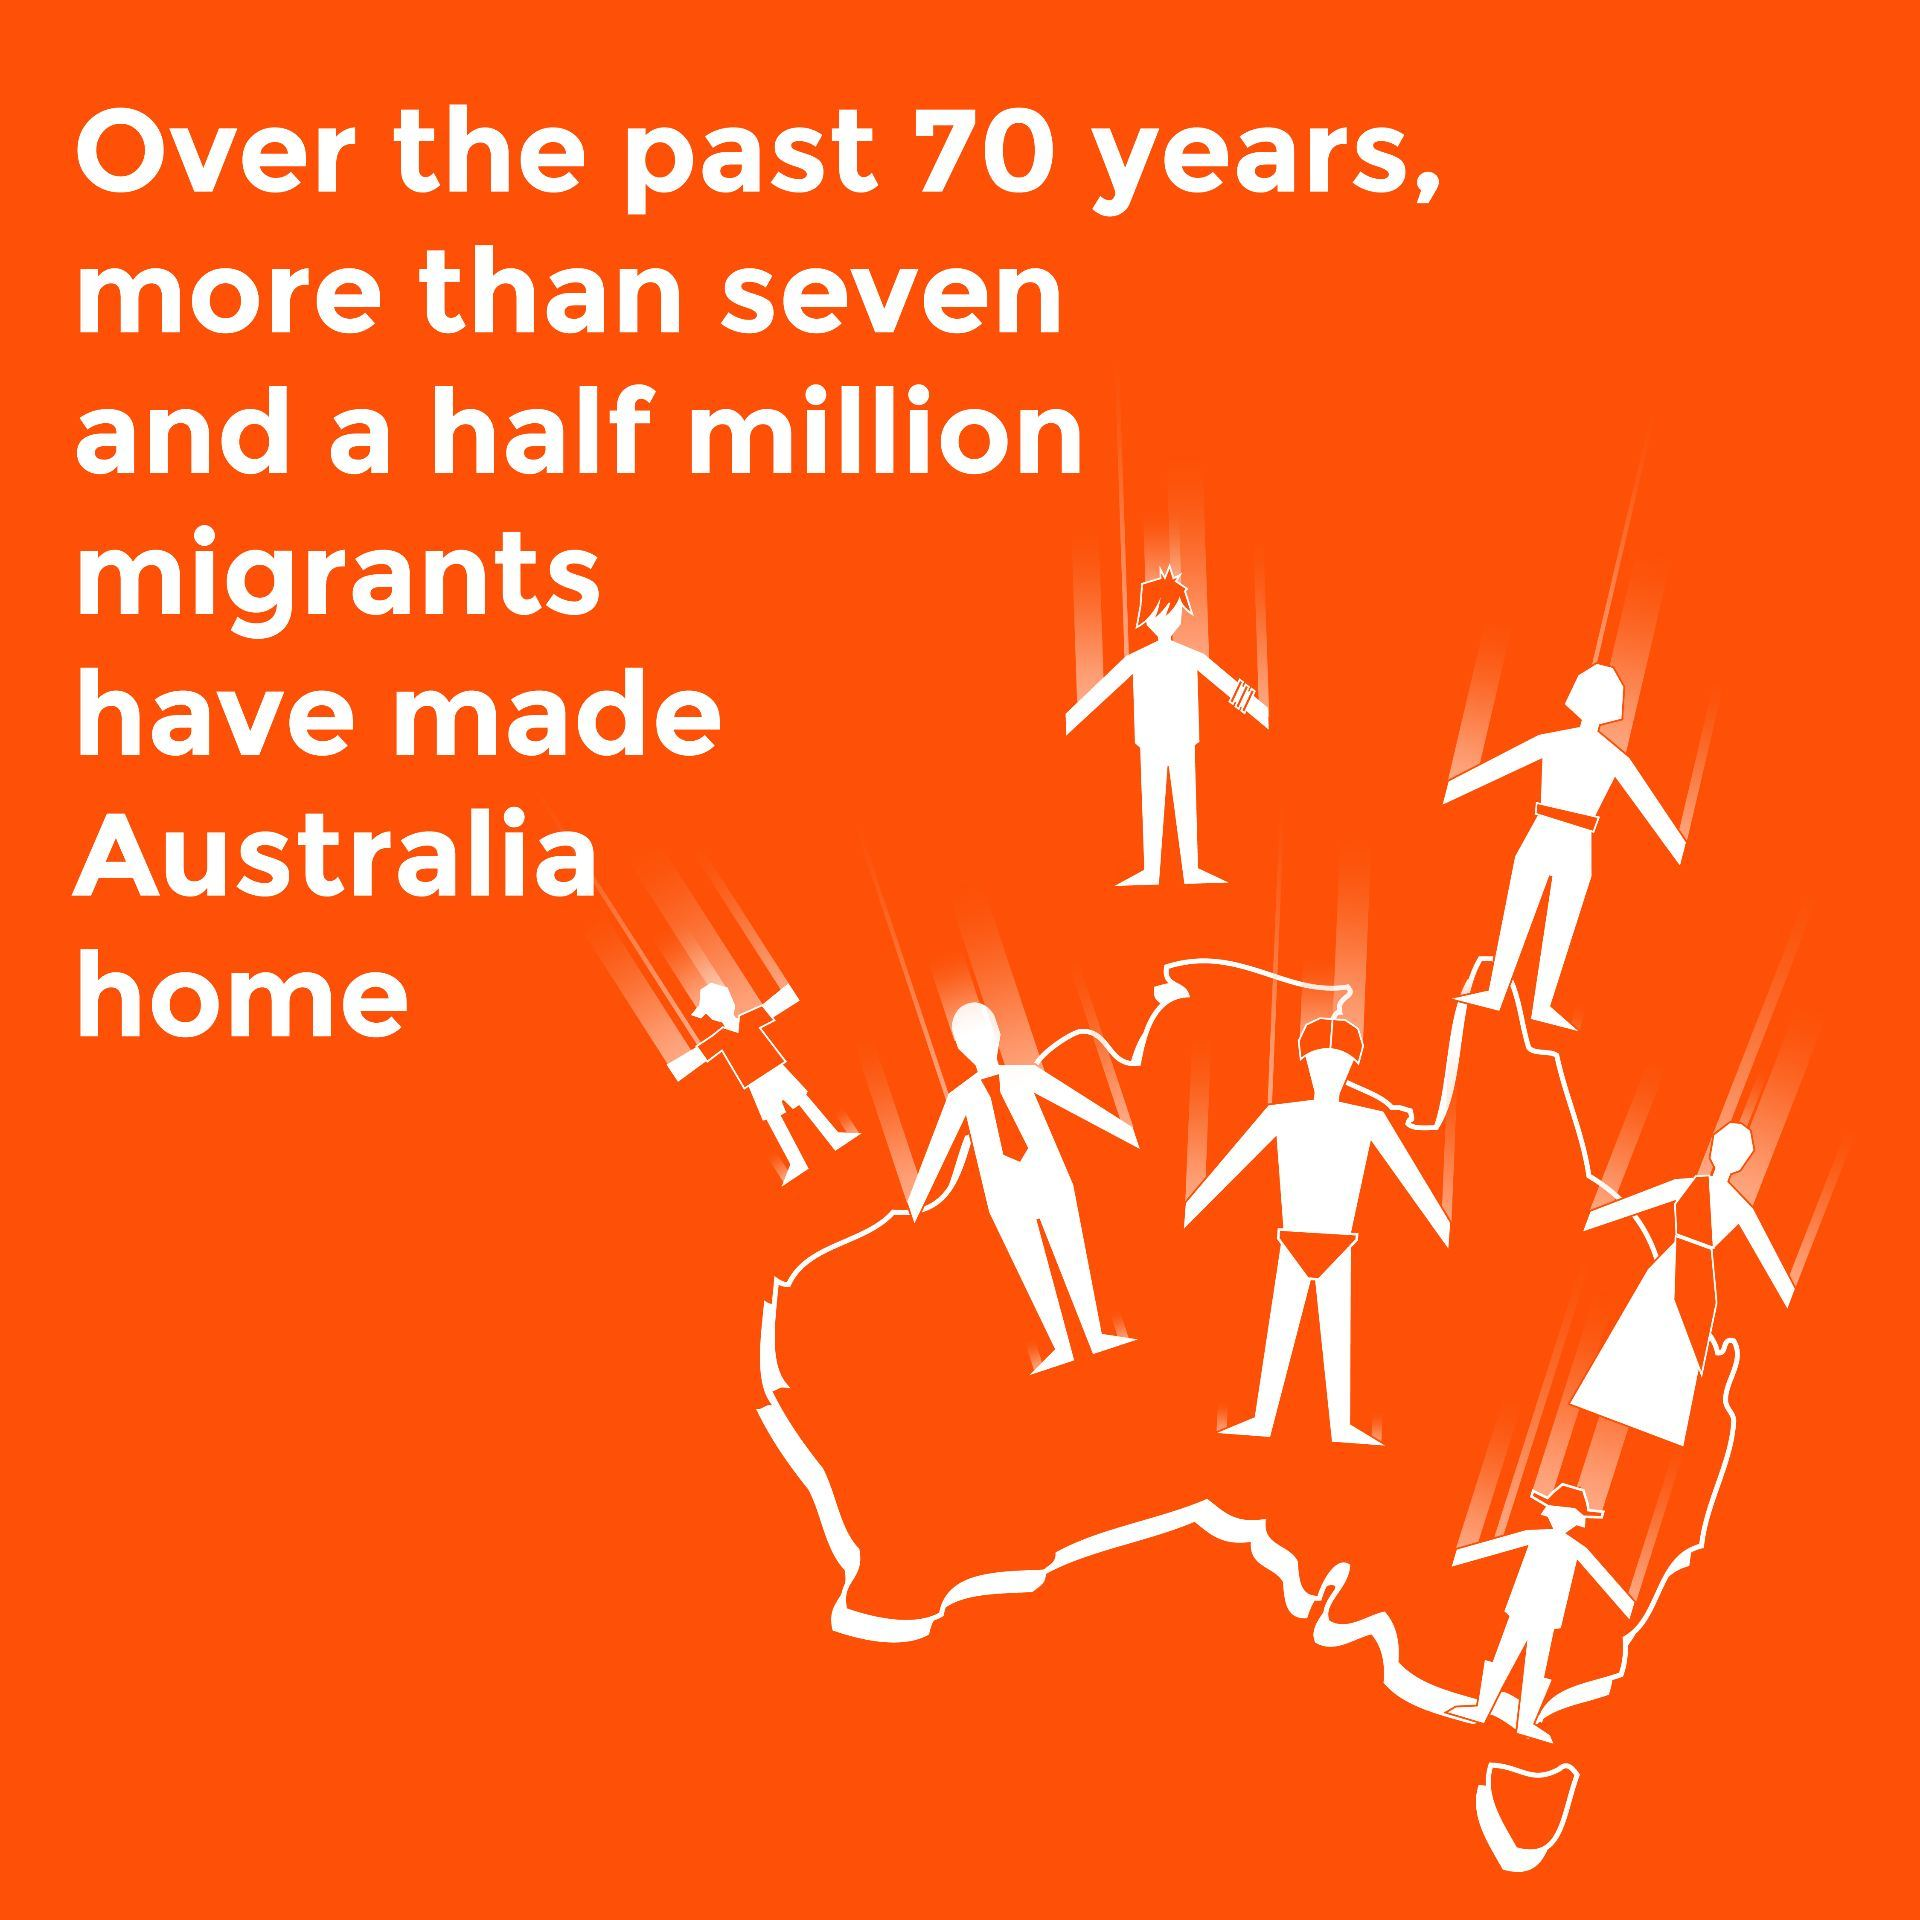 Over the past 70 years, more than 7.5 million migrants have made Australia home